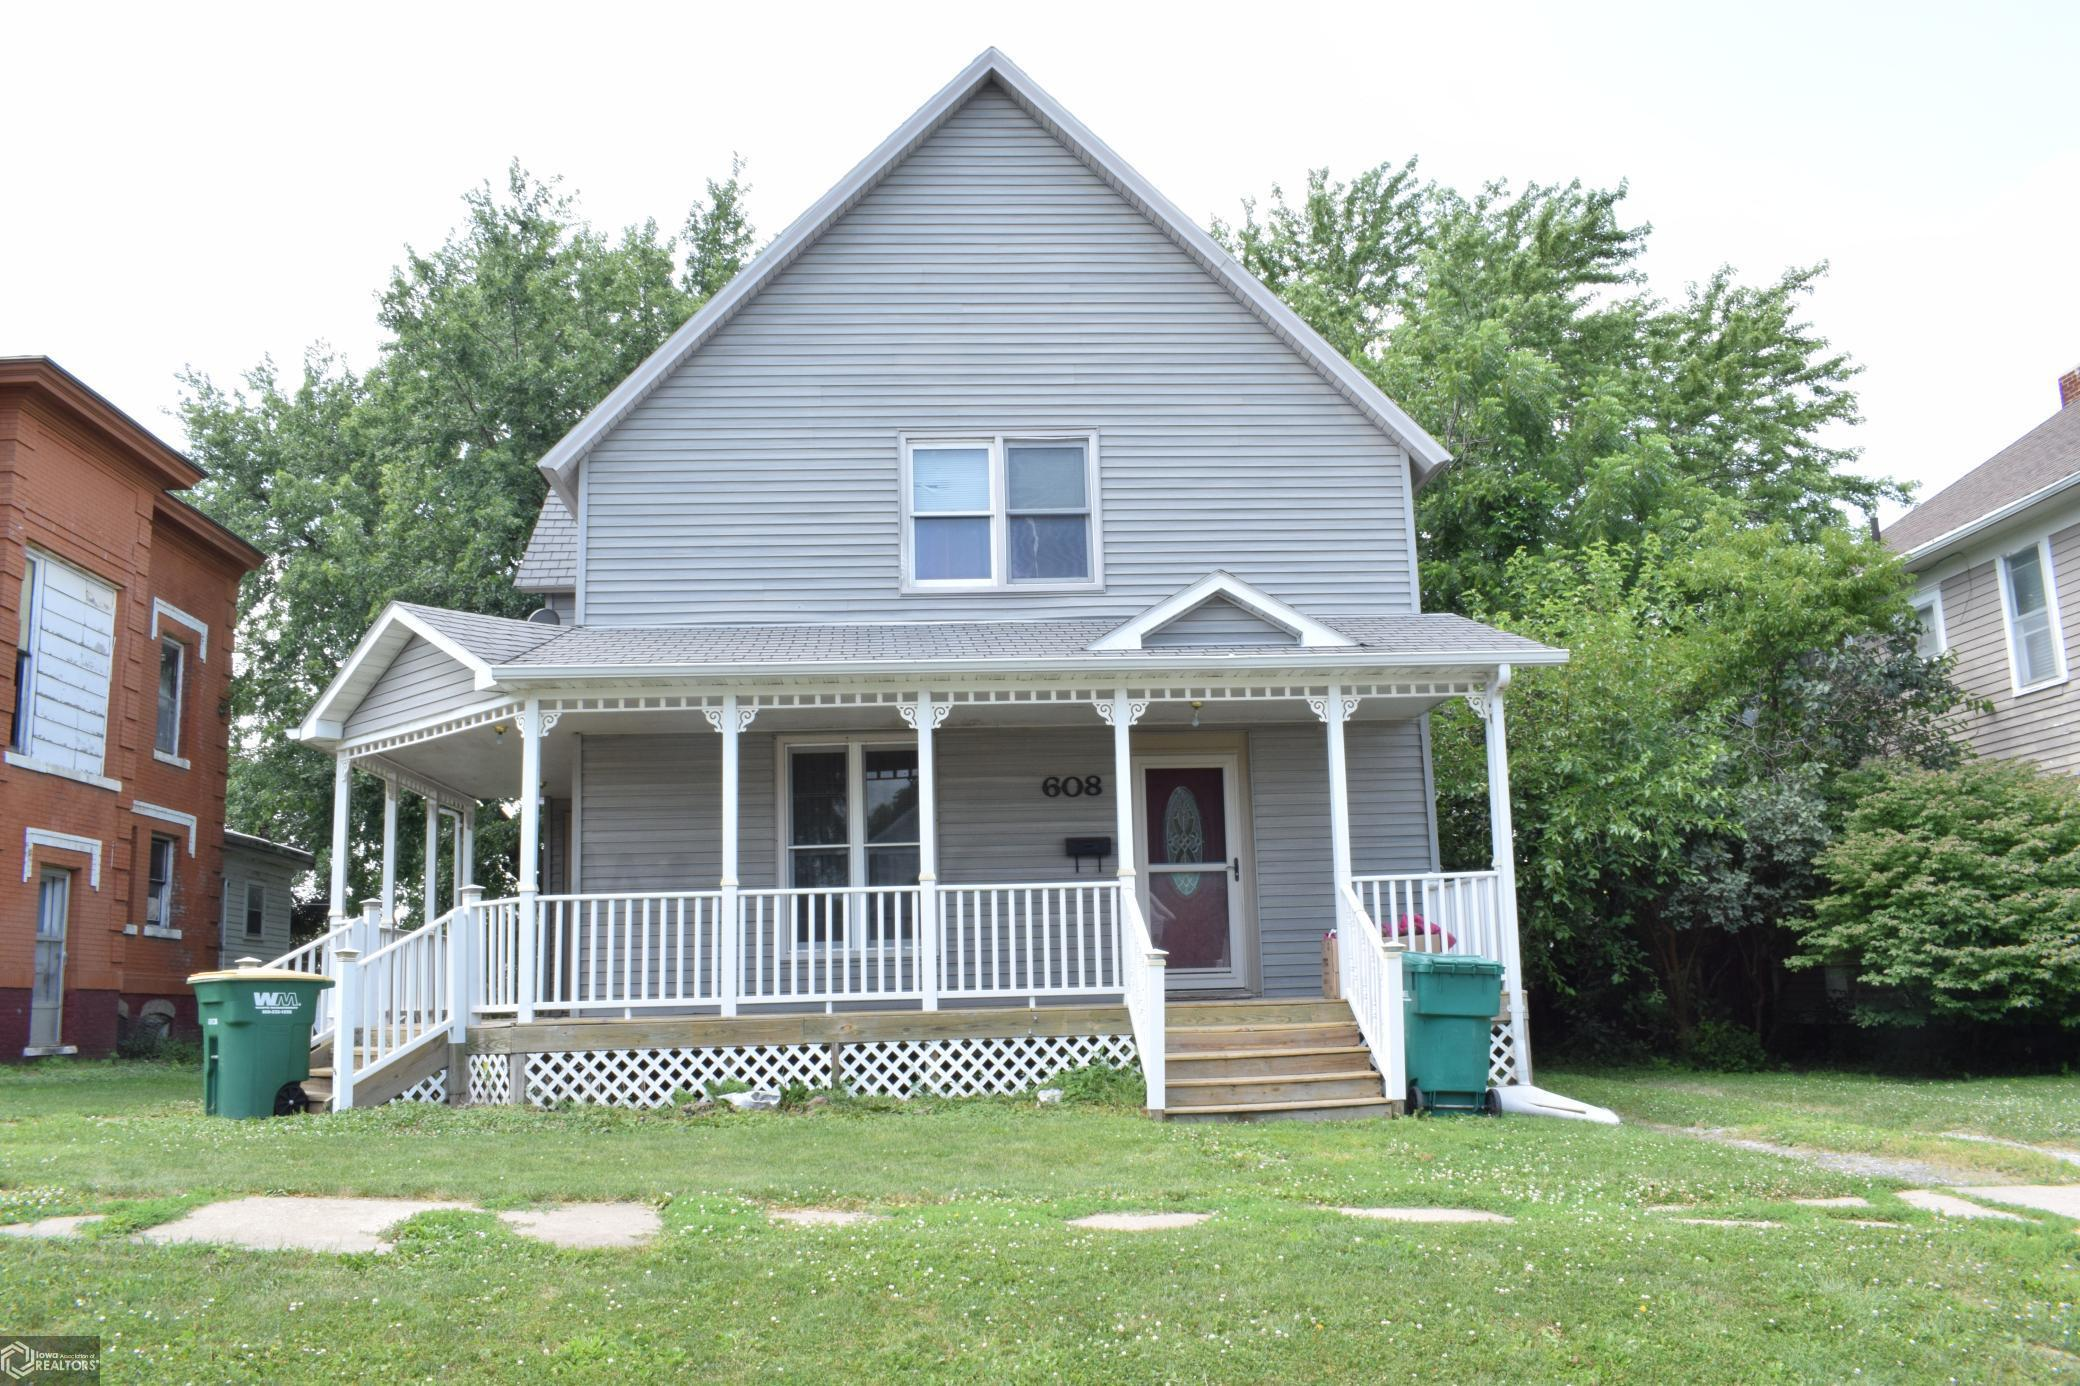 608 Maple Property Photo - Creston, IA real estate listing